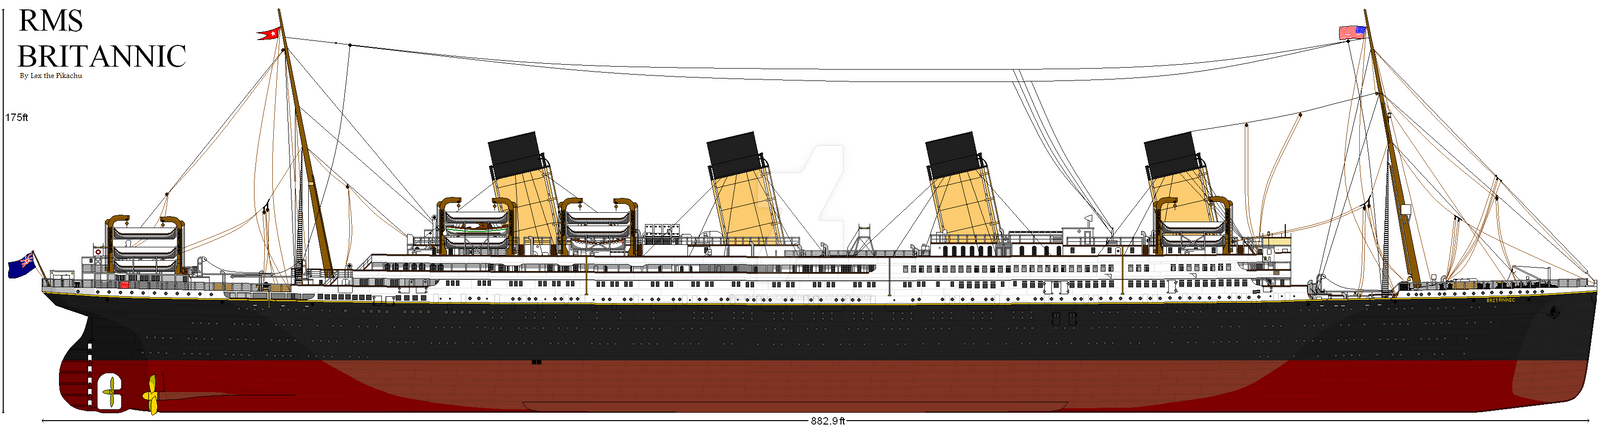 RMS Britannic by Crystal-Eclair on DeviantArt